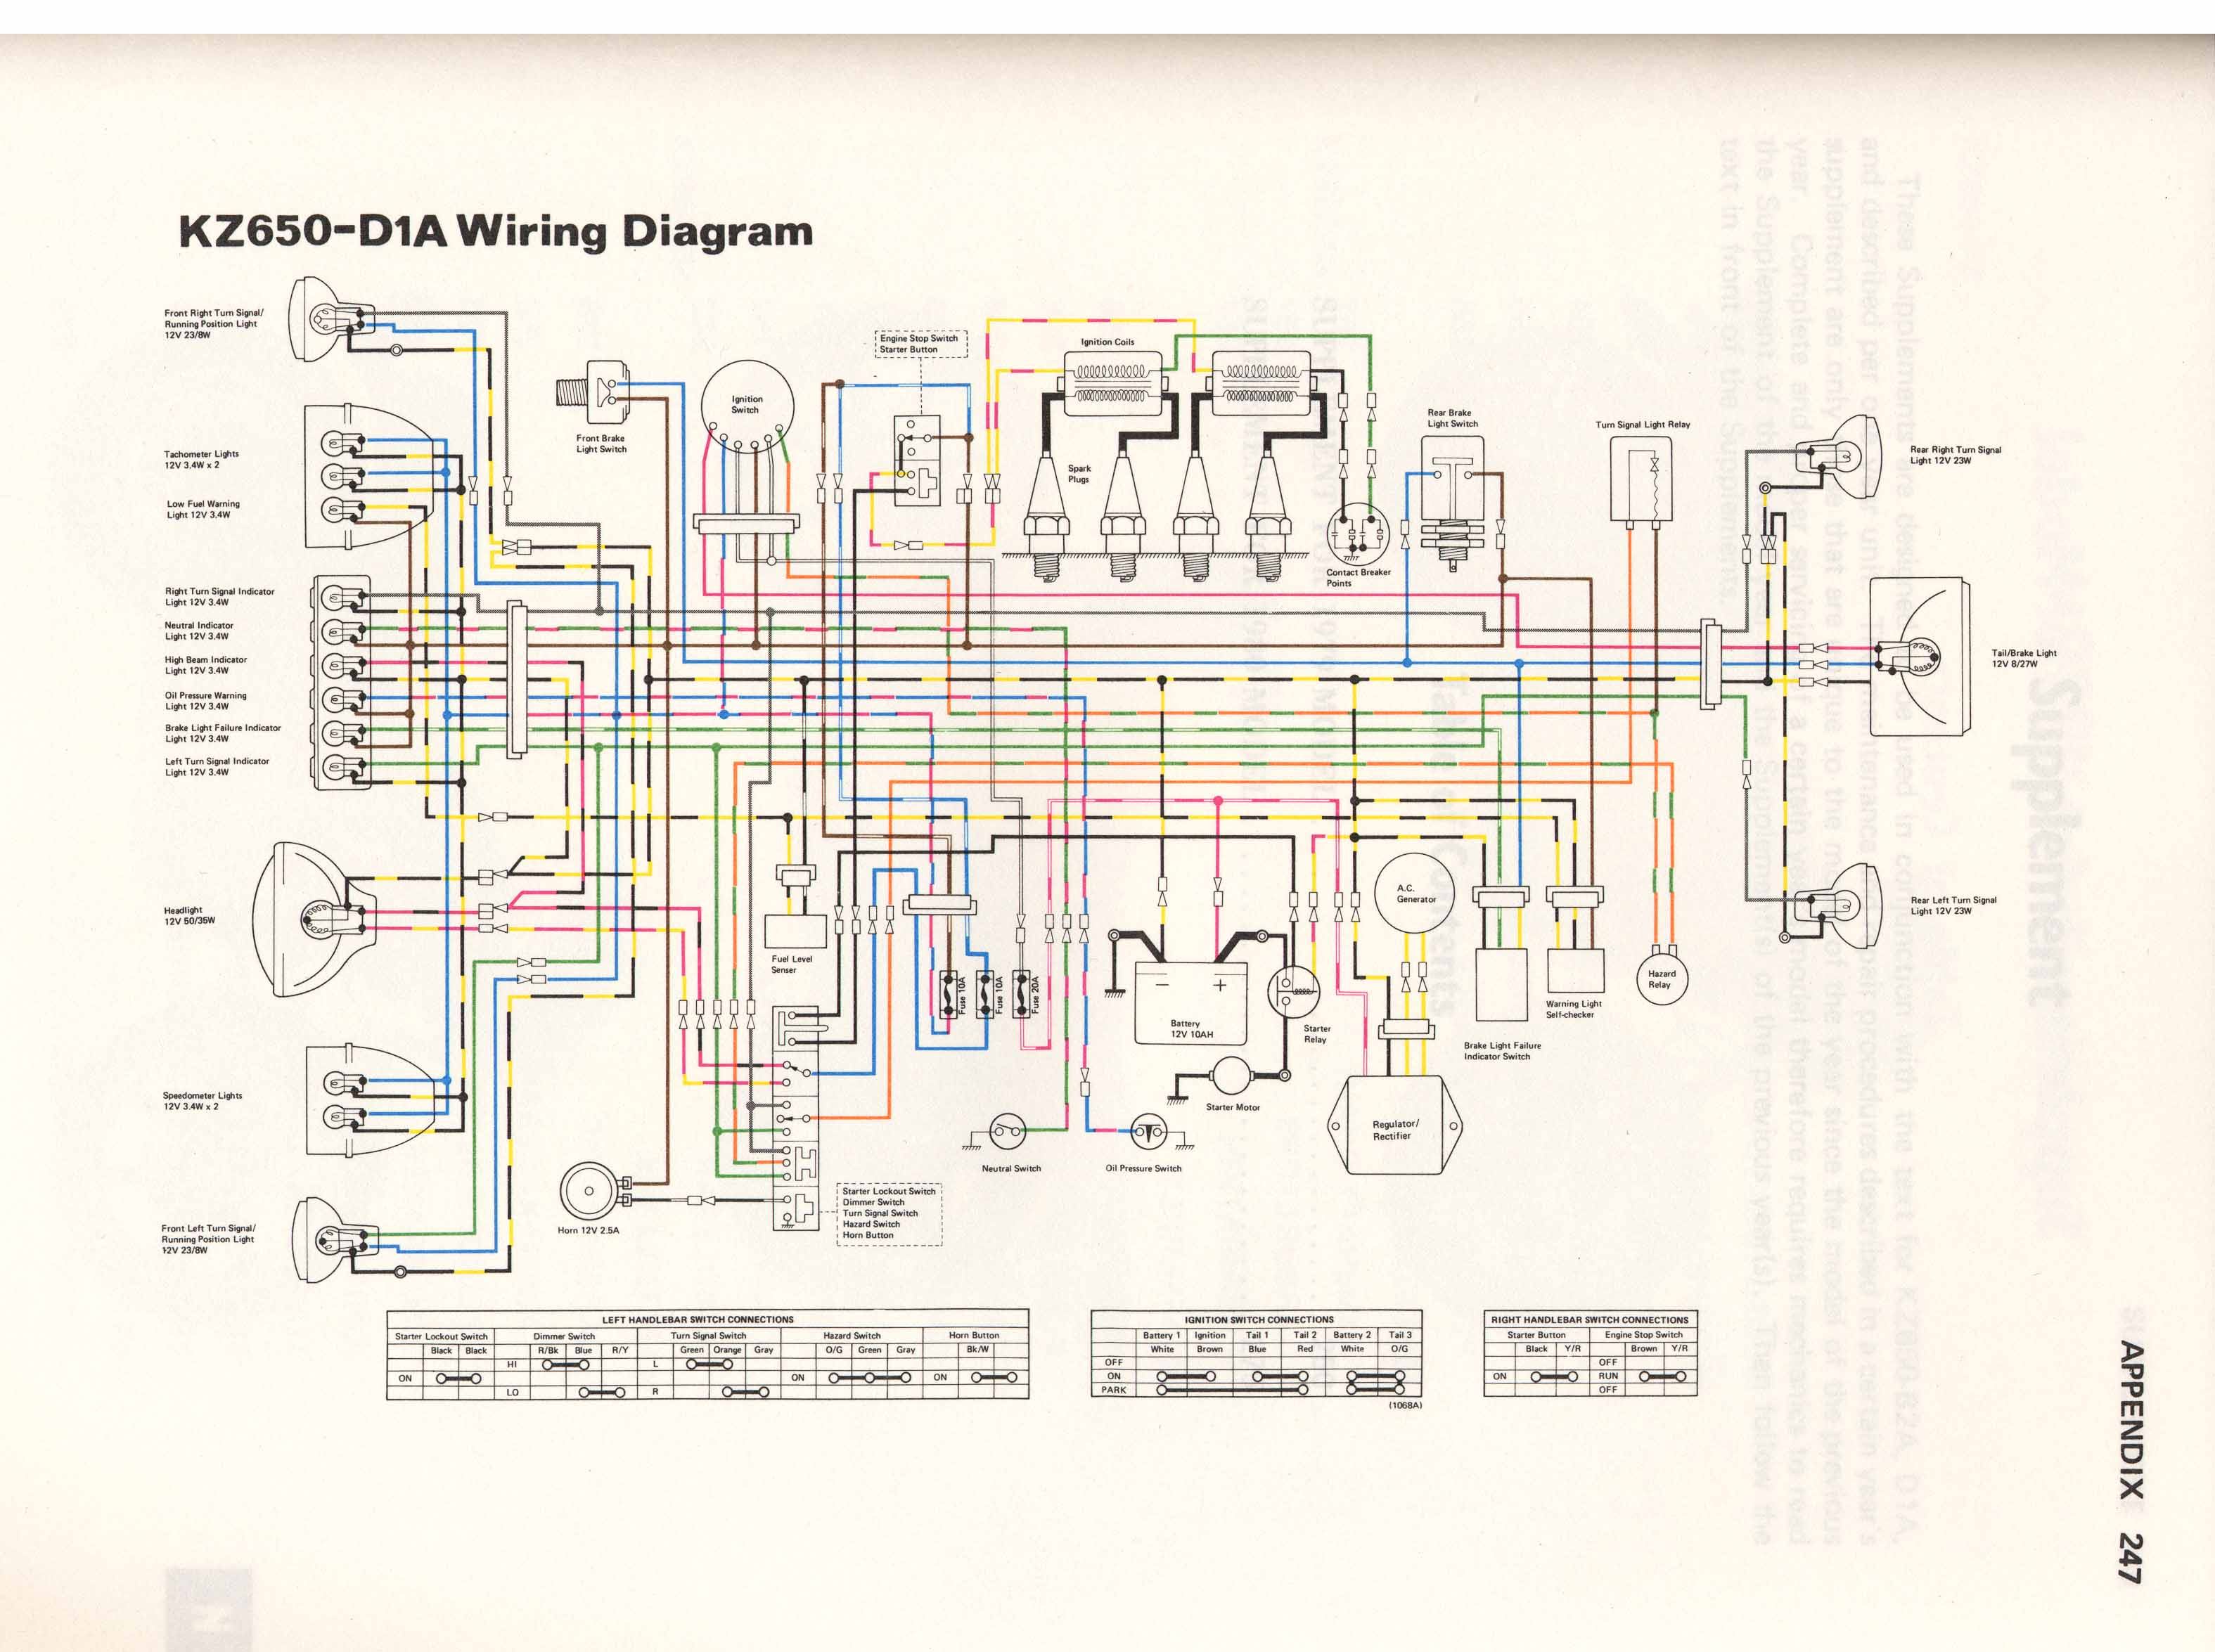 KZ650 D1A kz650 info wiring diagrams 1980 kz650 wiring diagram at readyjetset.co